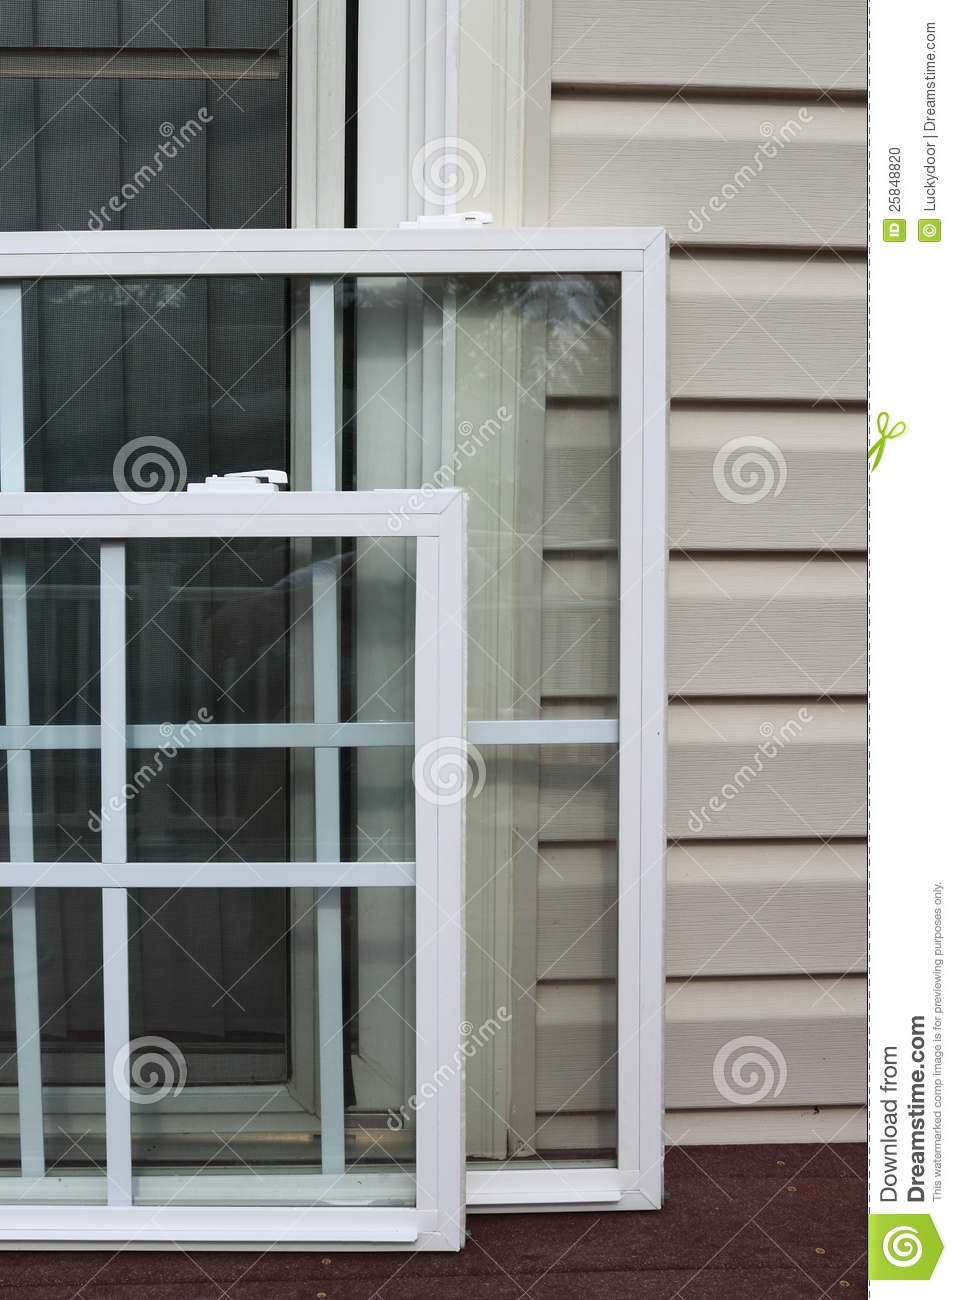 Energy efficient windows stock photo image 25848820 for Energy saving windows